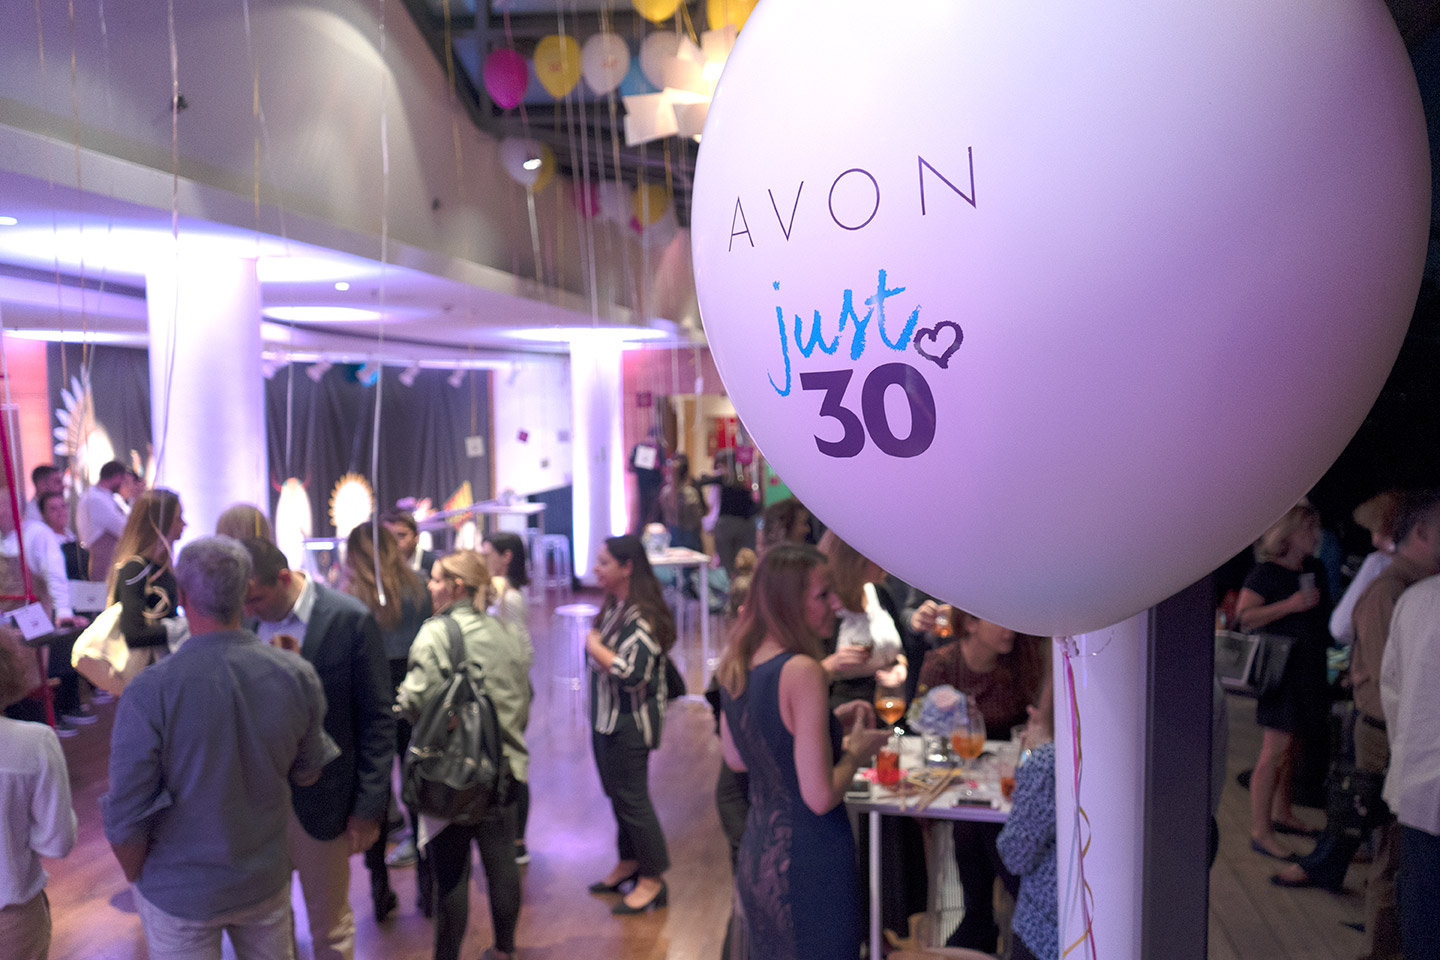 Avon Just 30 Party 1